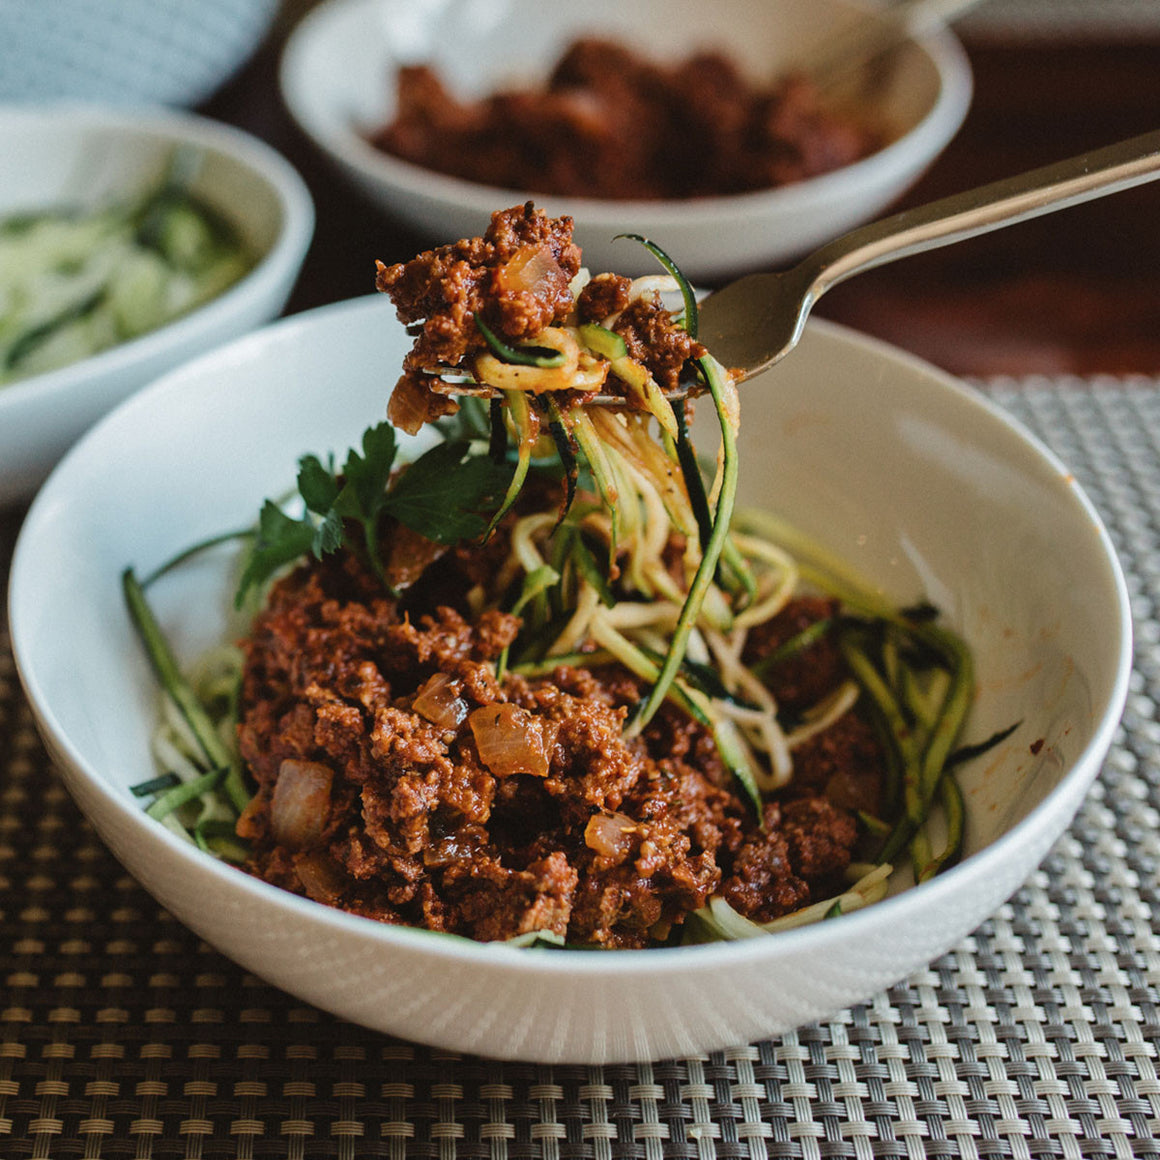 Beef ragu over zucchini noodles